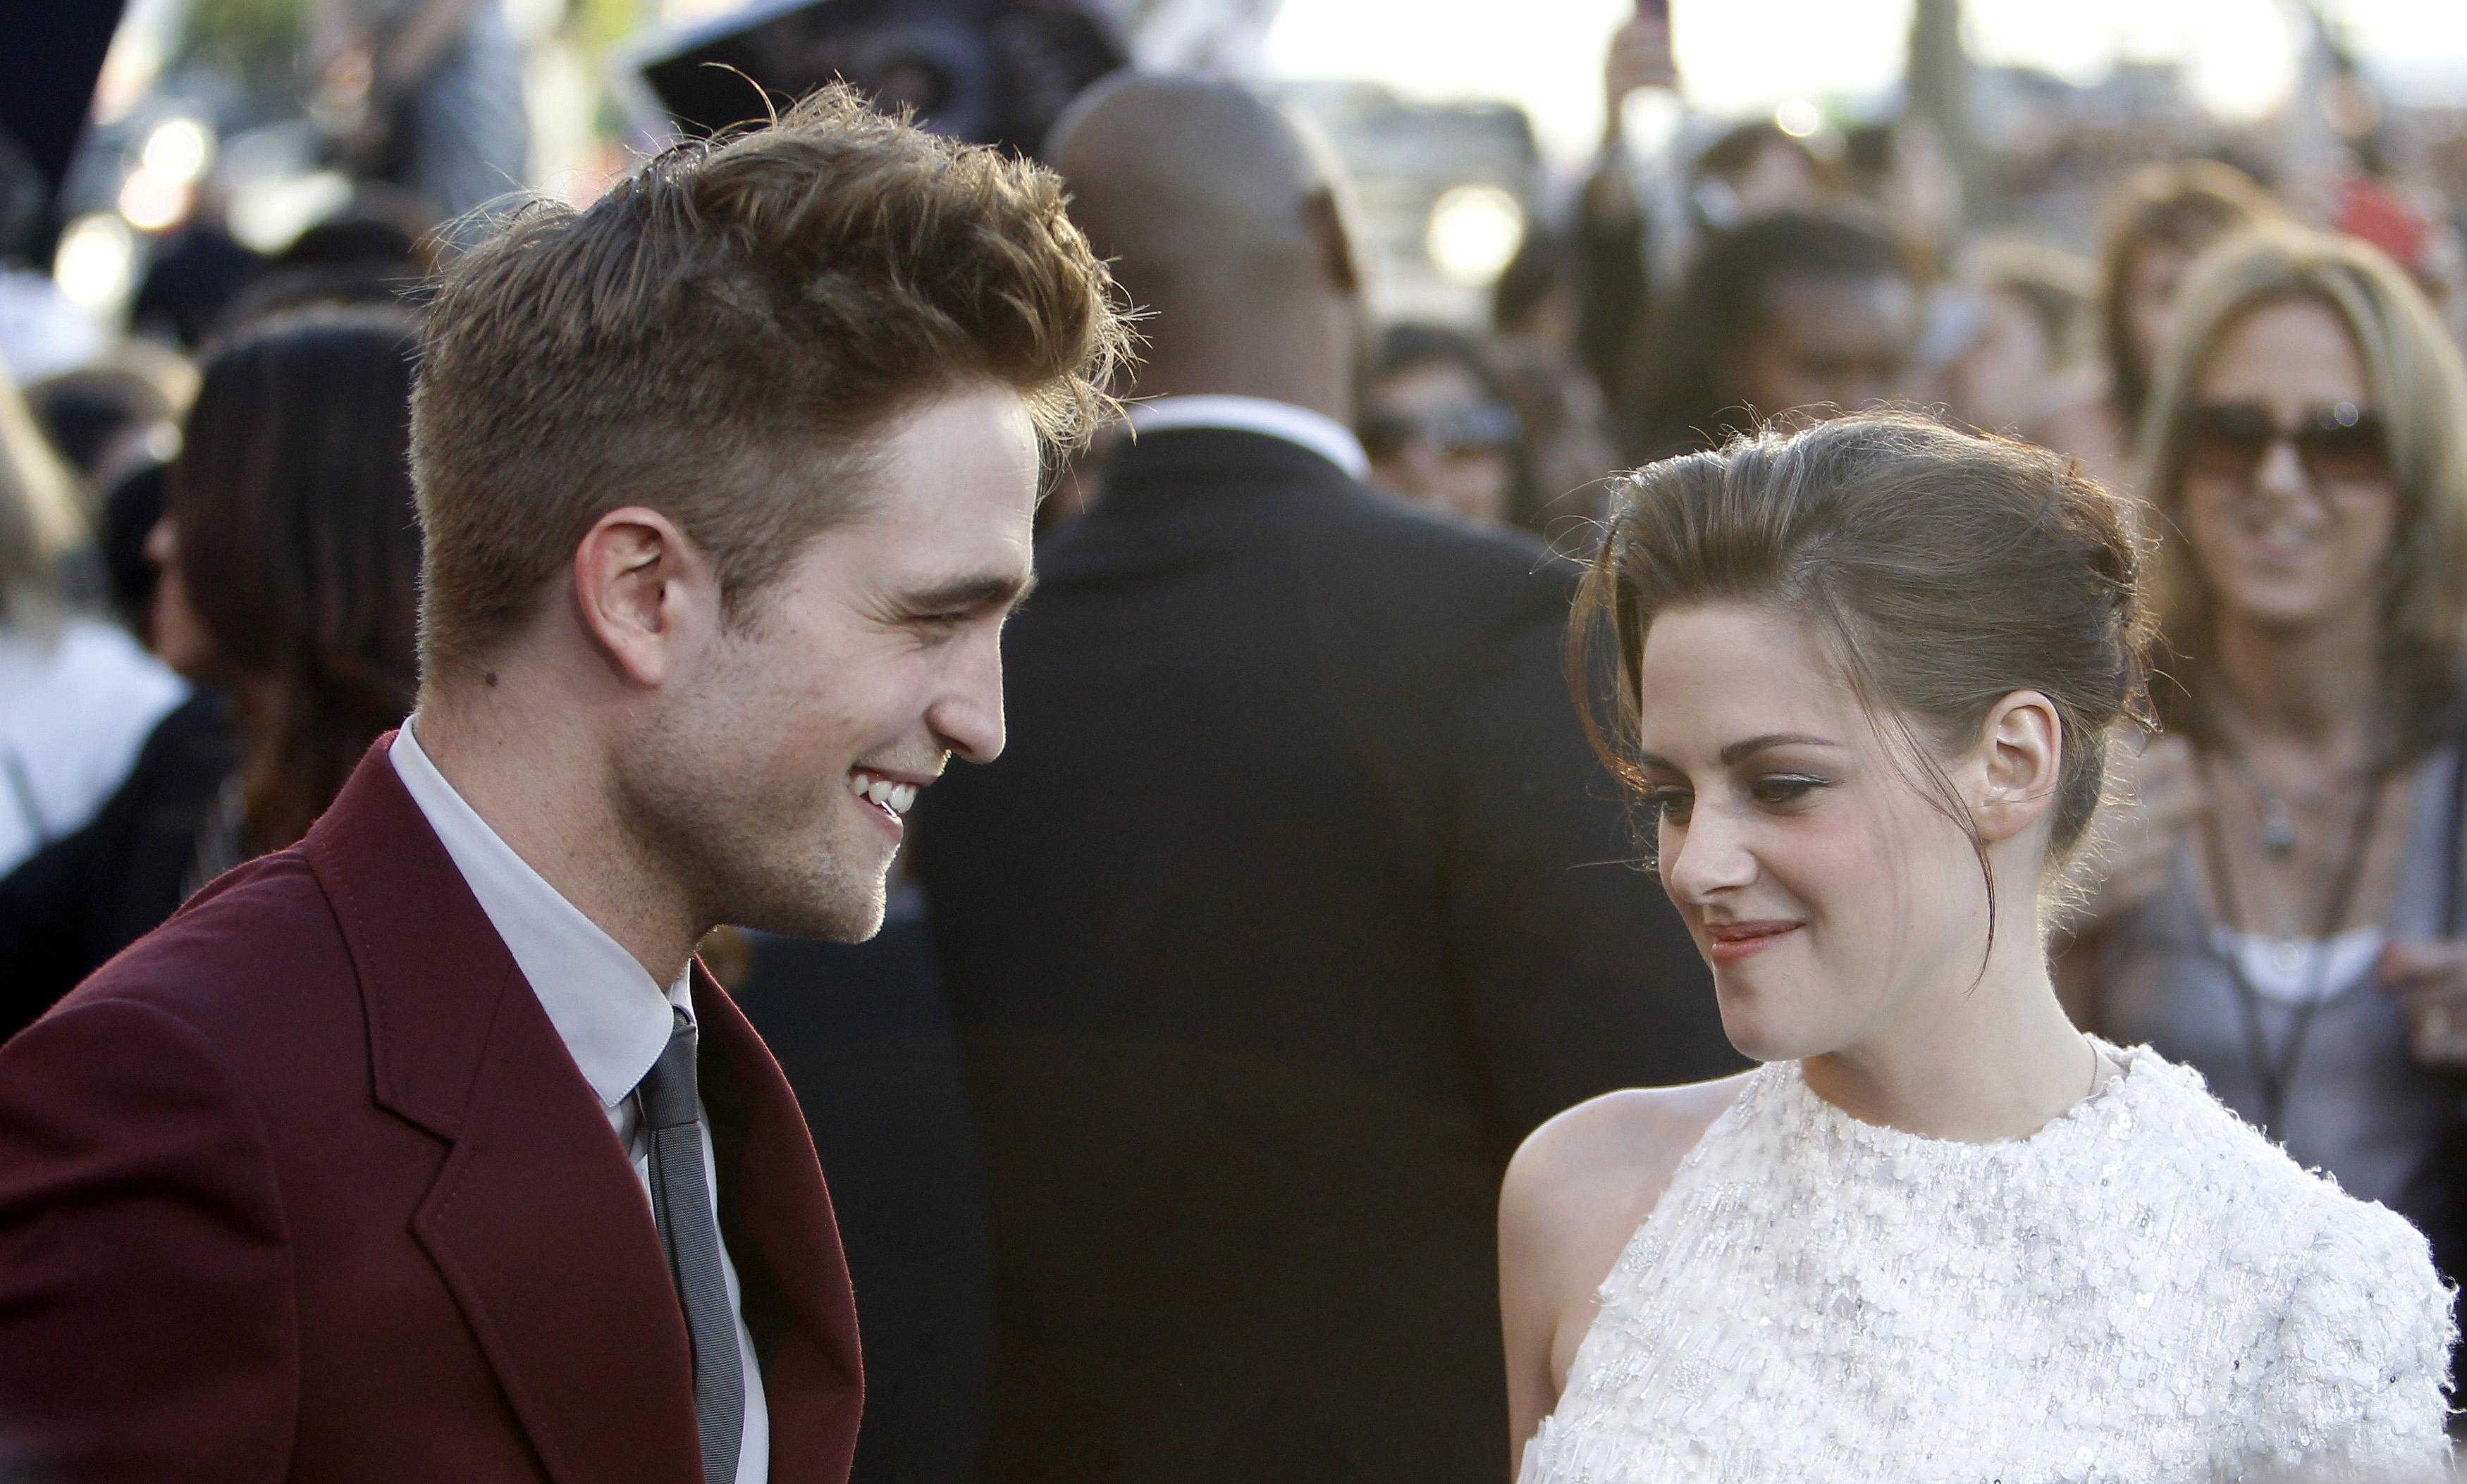 sono Kristen Stewart e Robert Pattinson dating 2013